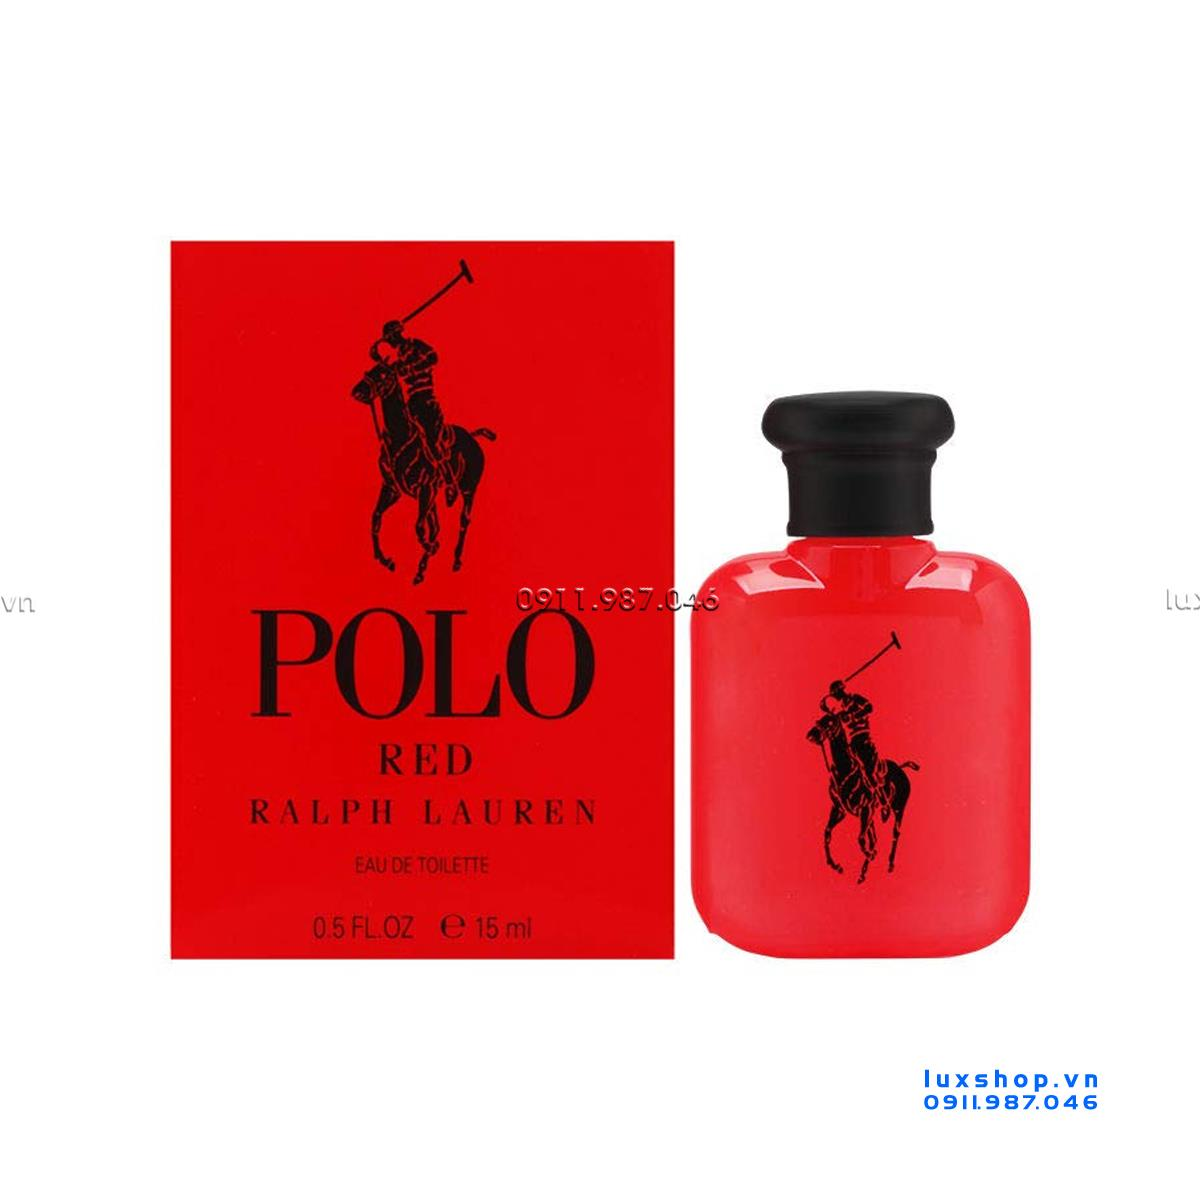 nuoc-hoa-nam-ralph-lauren-polo-red-edt-15ml-chinh-hang-pn102034